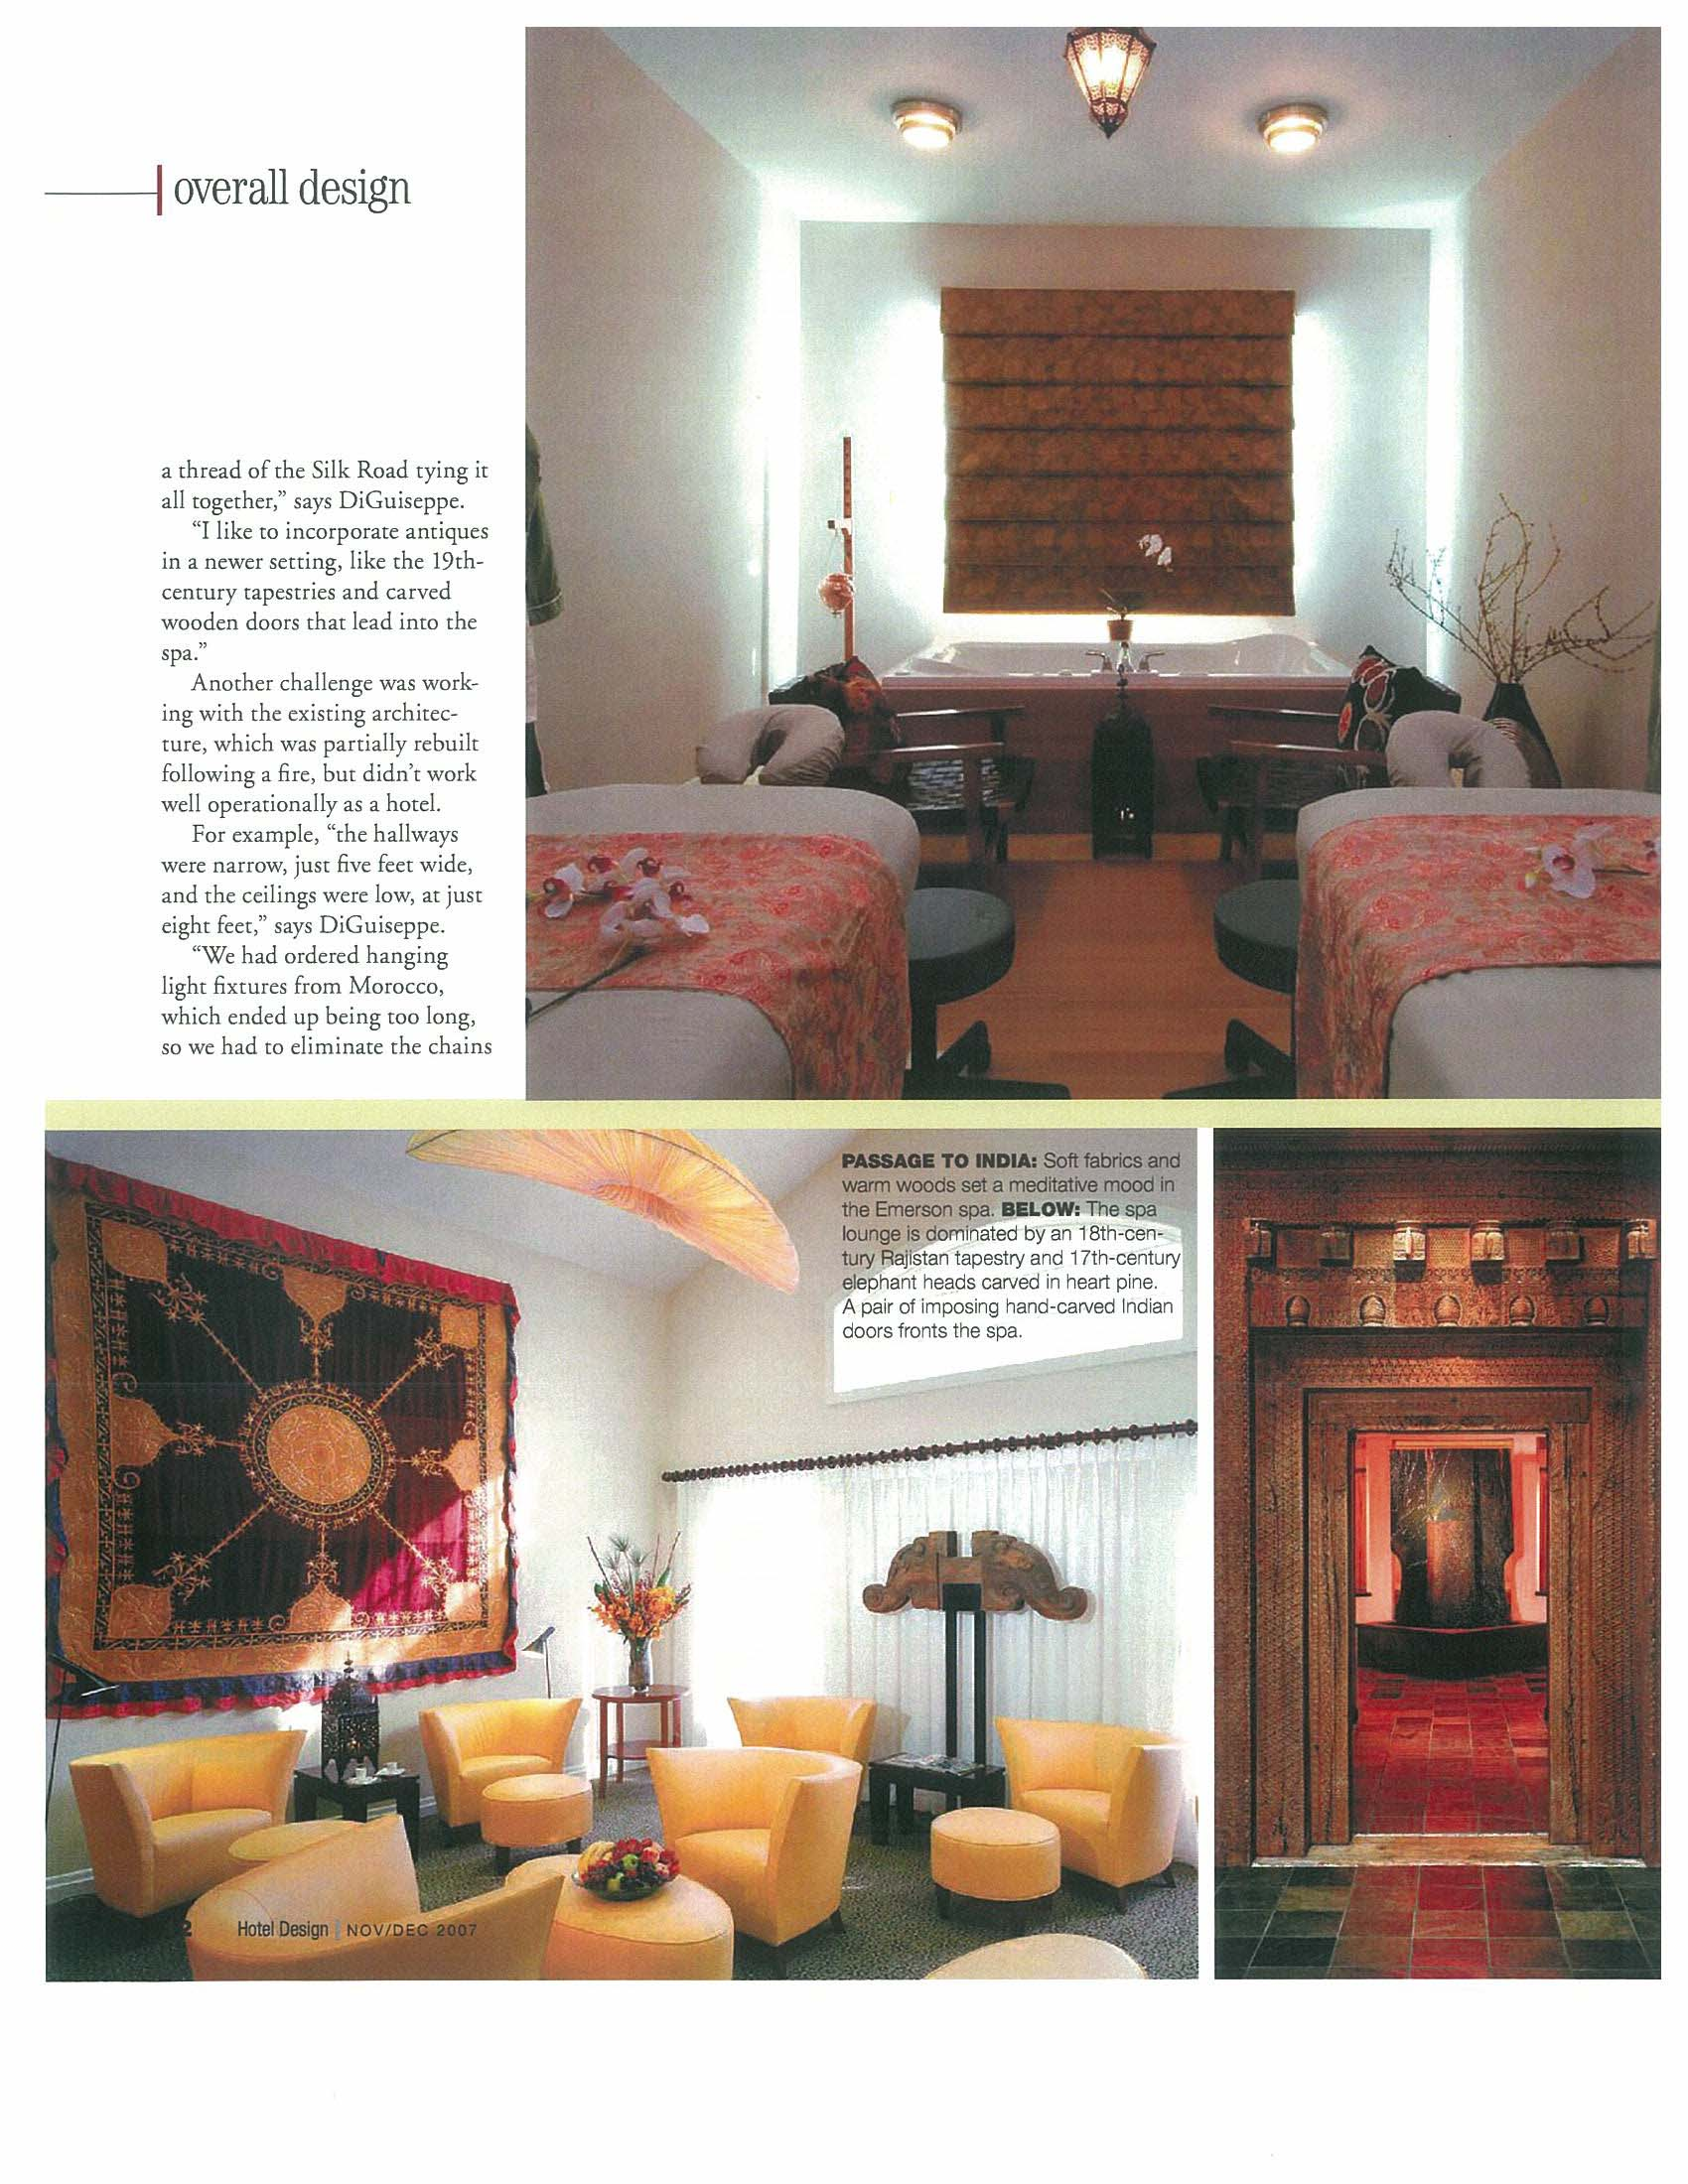 Emerson_Hotel_Design_Article_Page_4